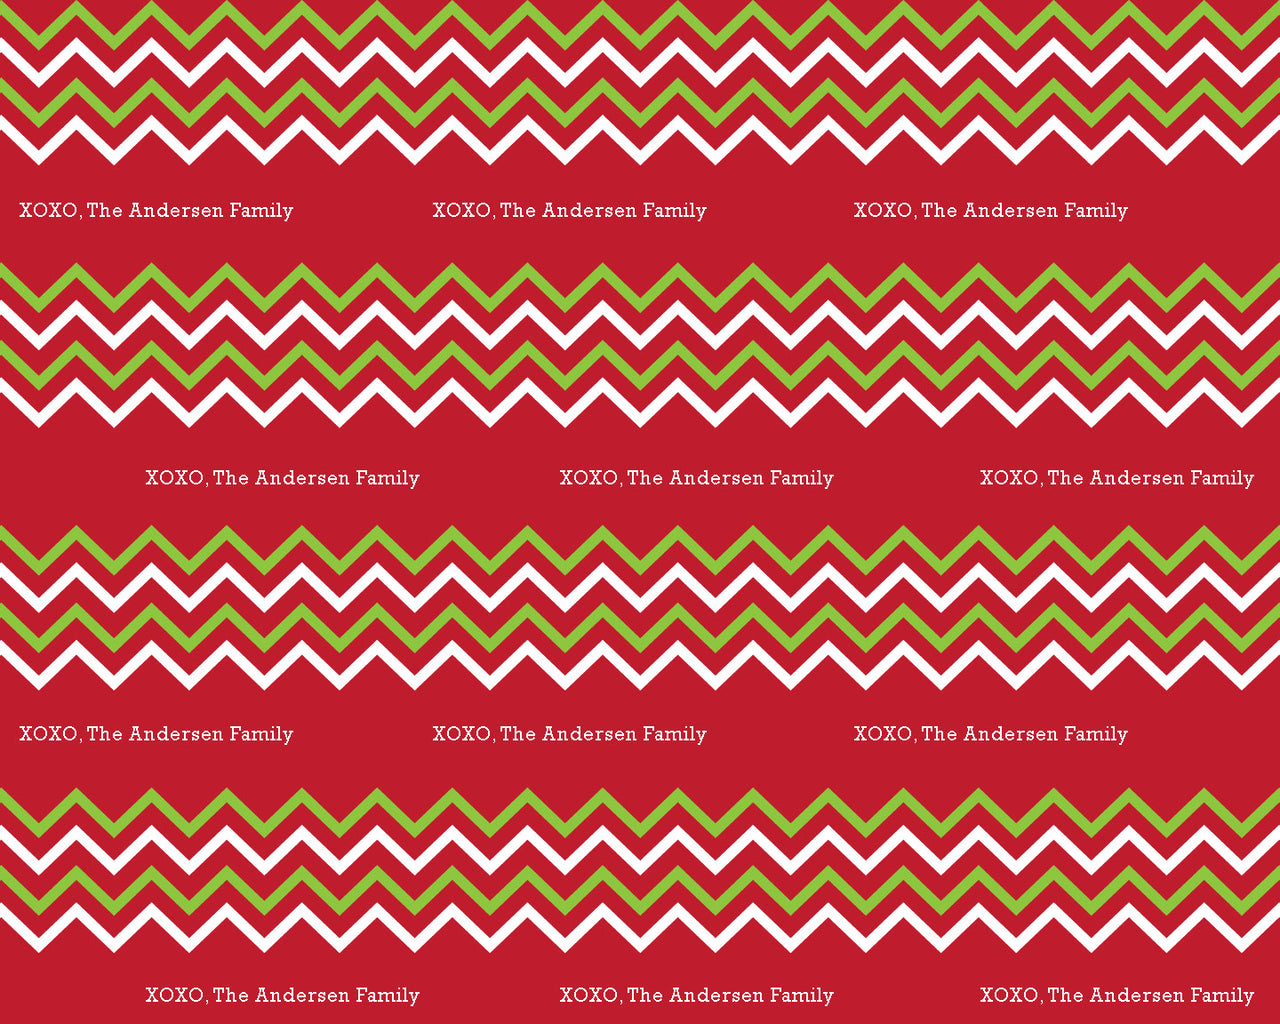 Christmas Chevron Wrapping Paper 12ft - frecklebox